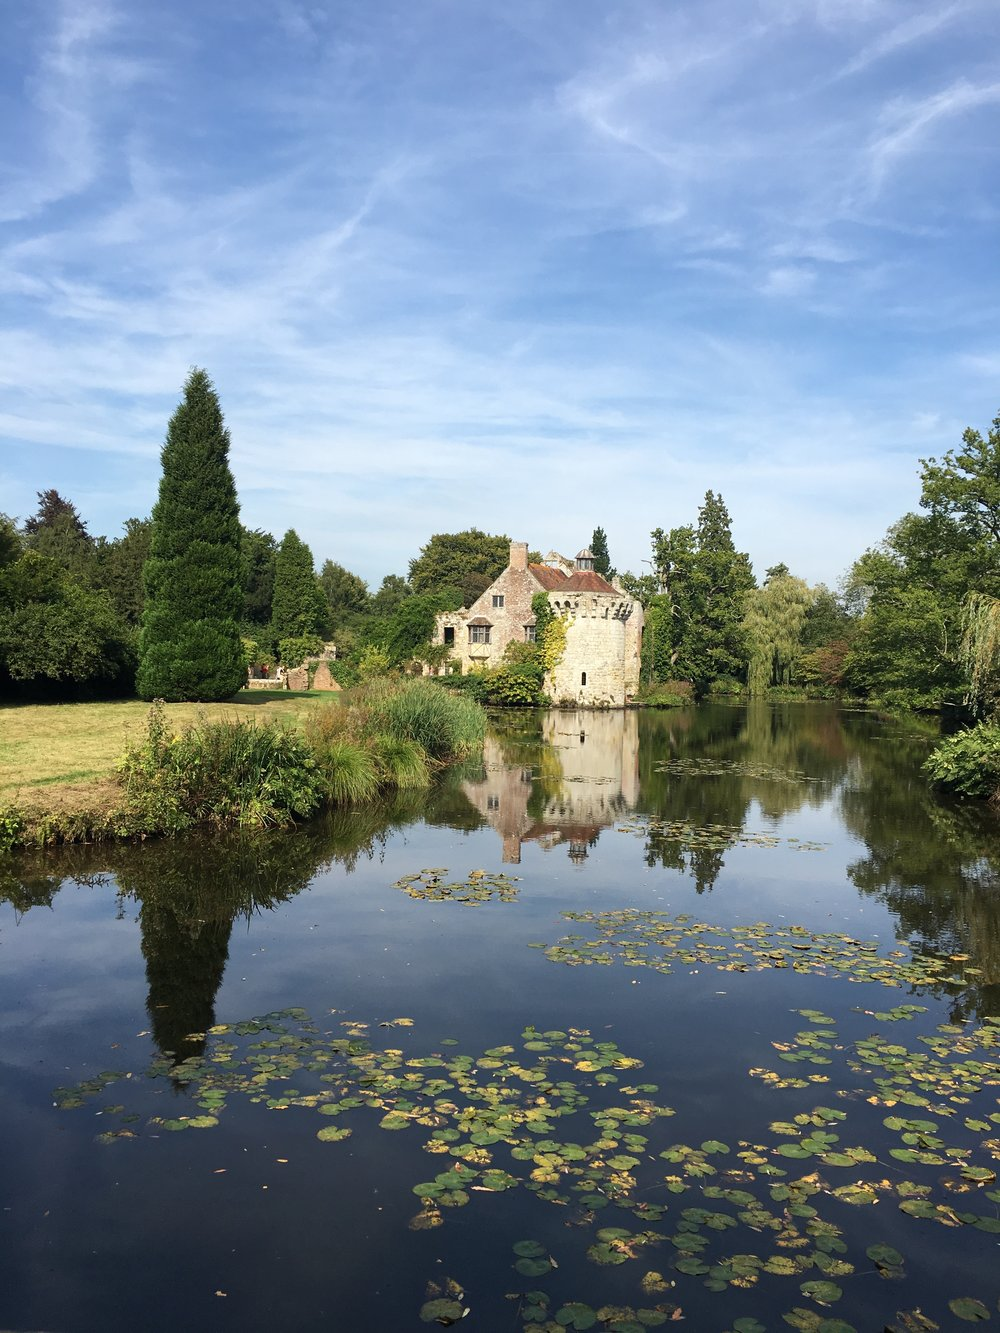 Scotney Castle in Kent is a stunning National Trust property near Lamberhurst in Kent. There is an old stately home, absolutely beautiful grounds and this absolutely charming derelict castle. I love wandering around it, taking in its lovely features and looking at the gorgeous nature.